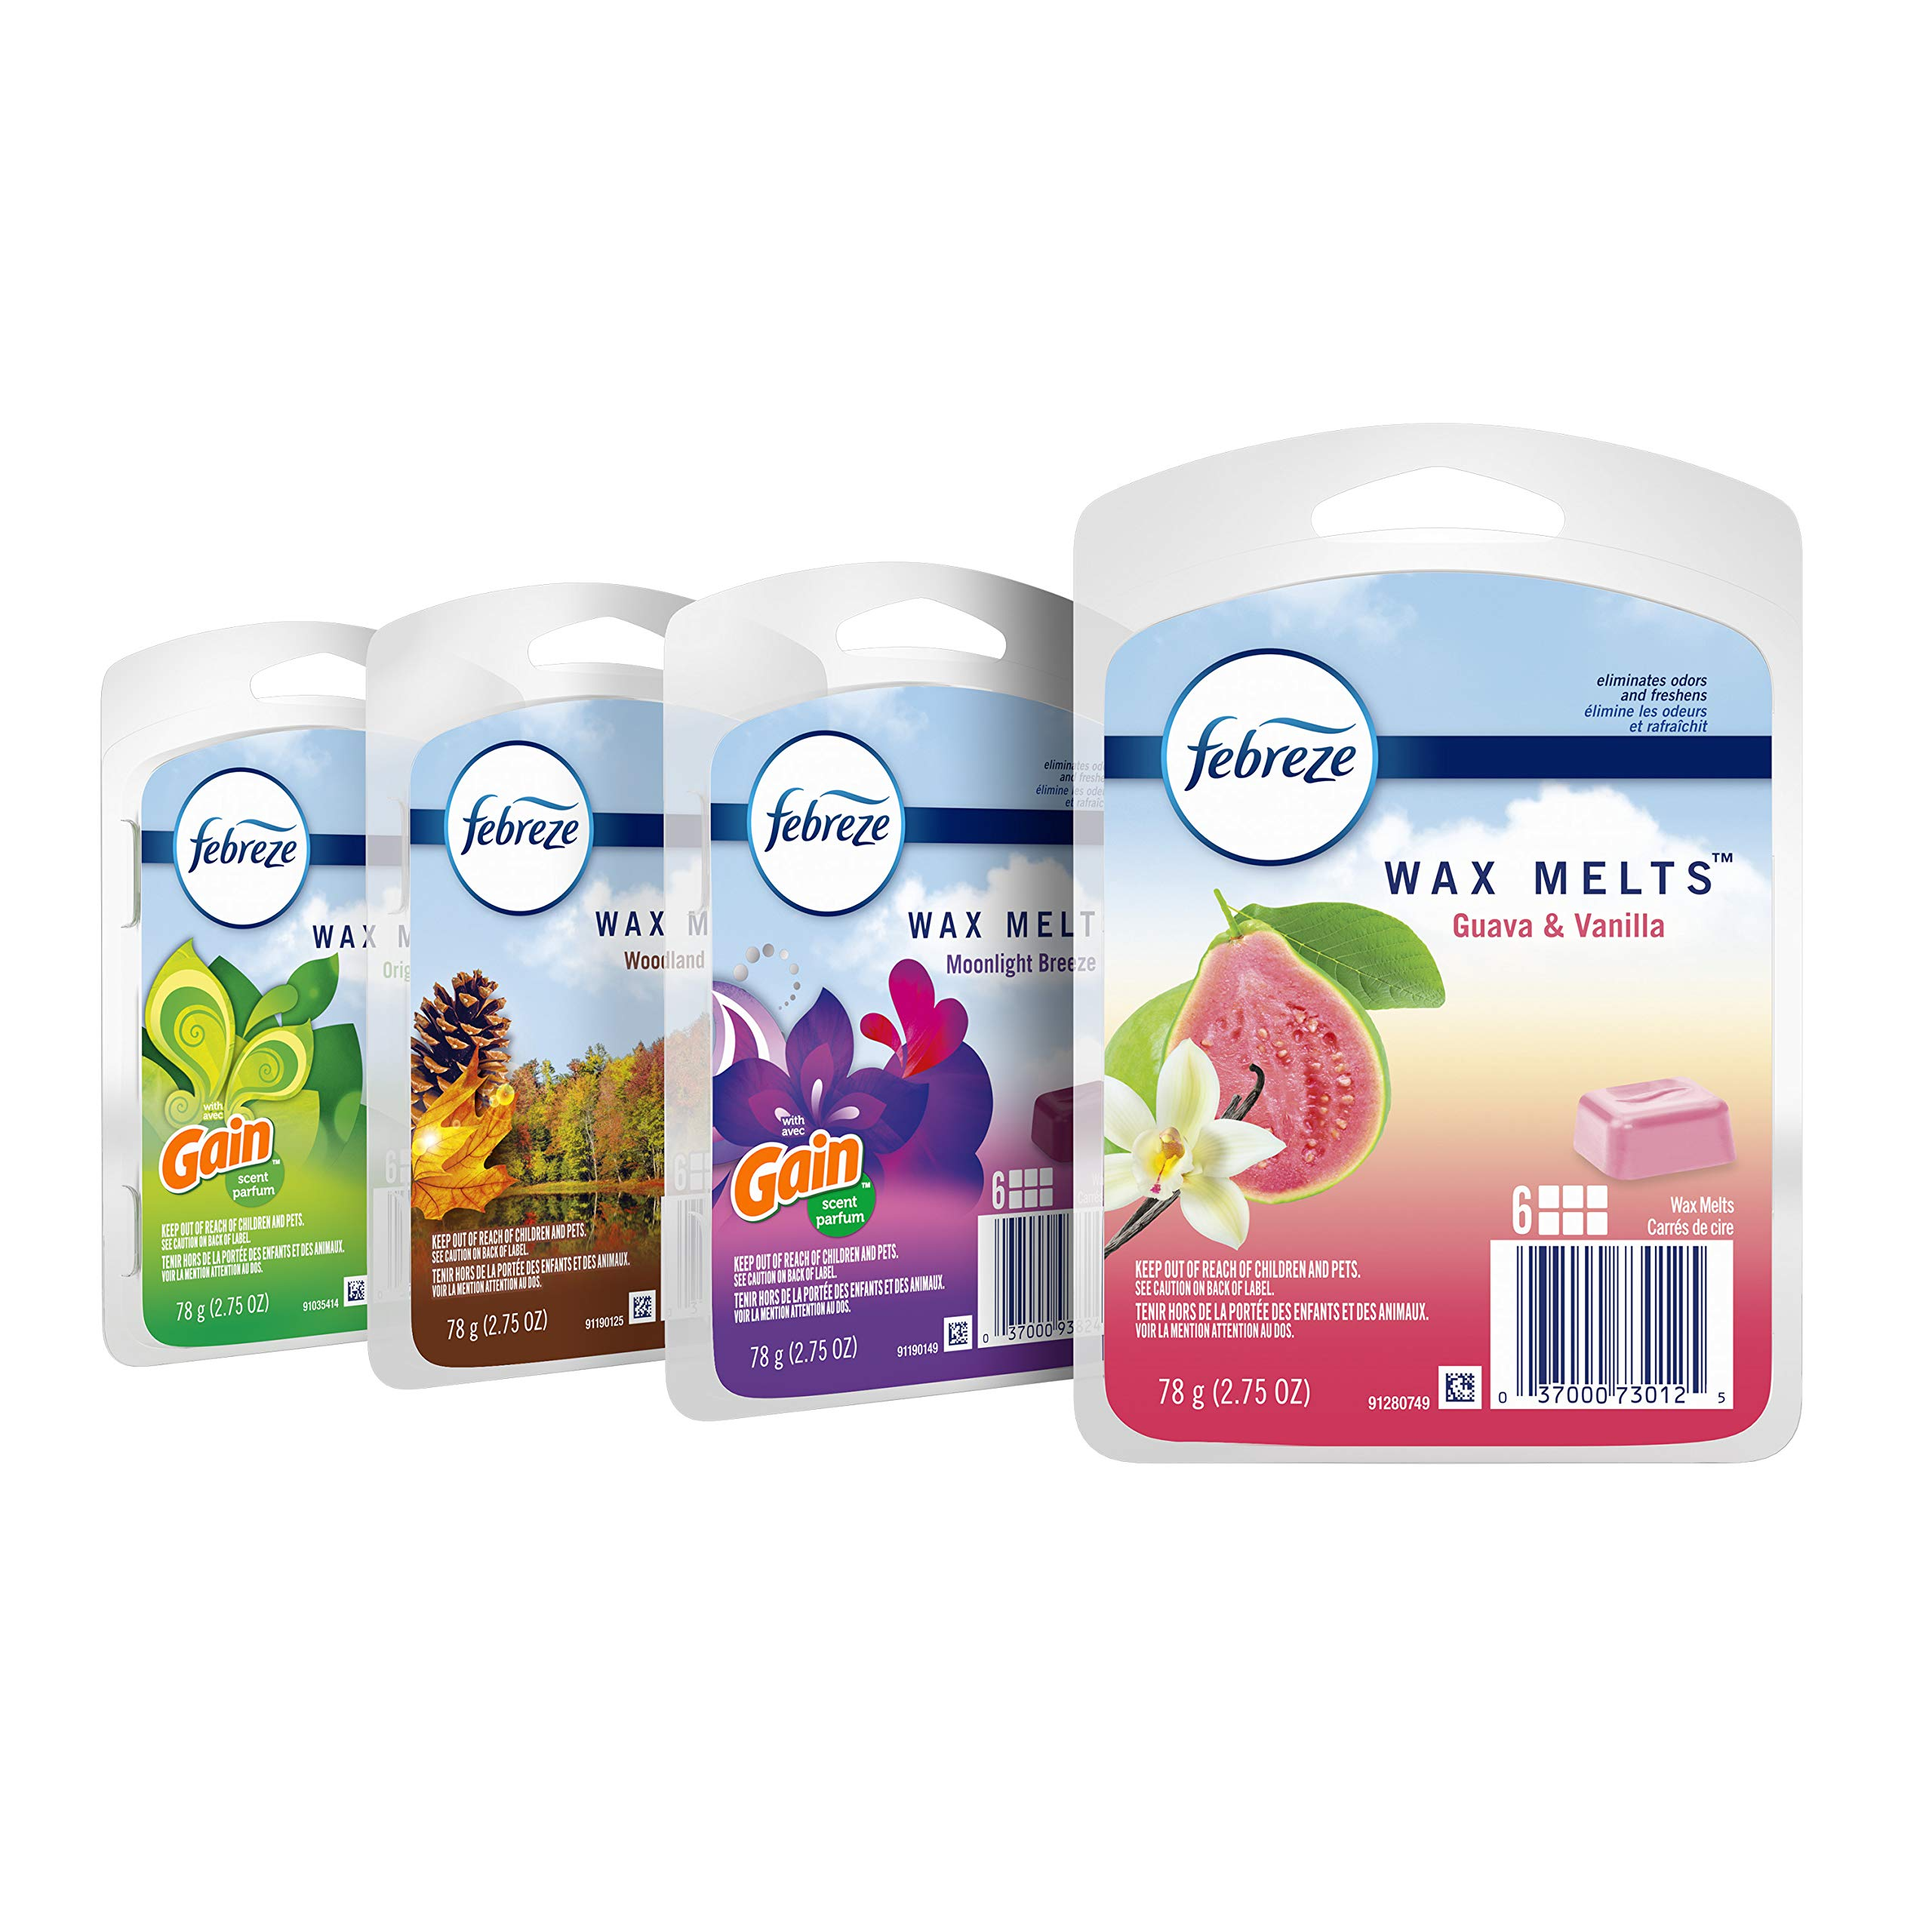 Febreze Wax Melts, Air Freshener and Odor Eliminator, Variety Pack, 4 Packs, 6 Cubes Each